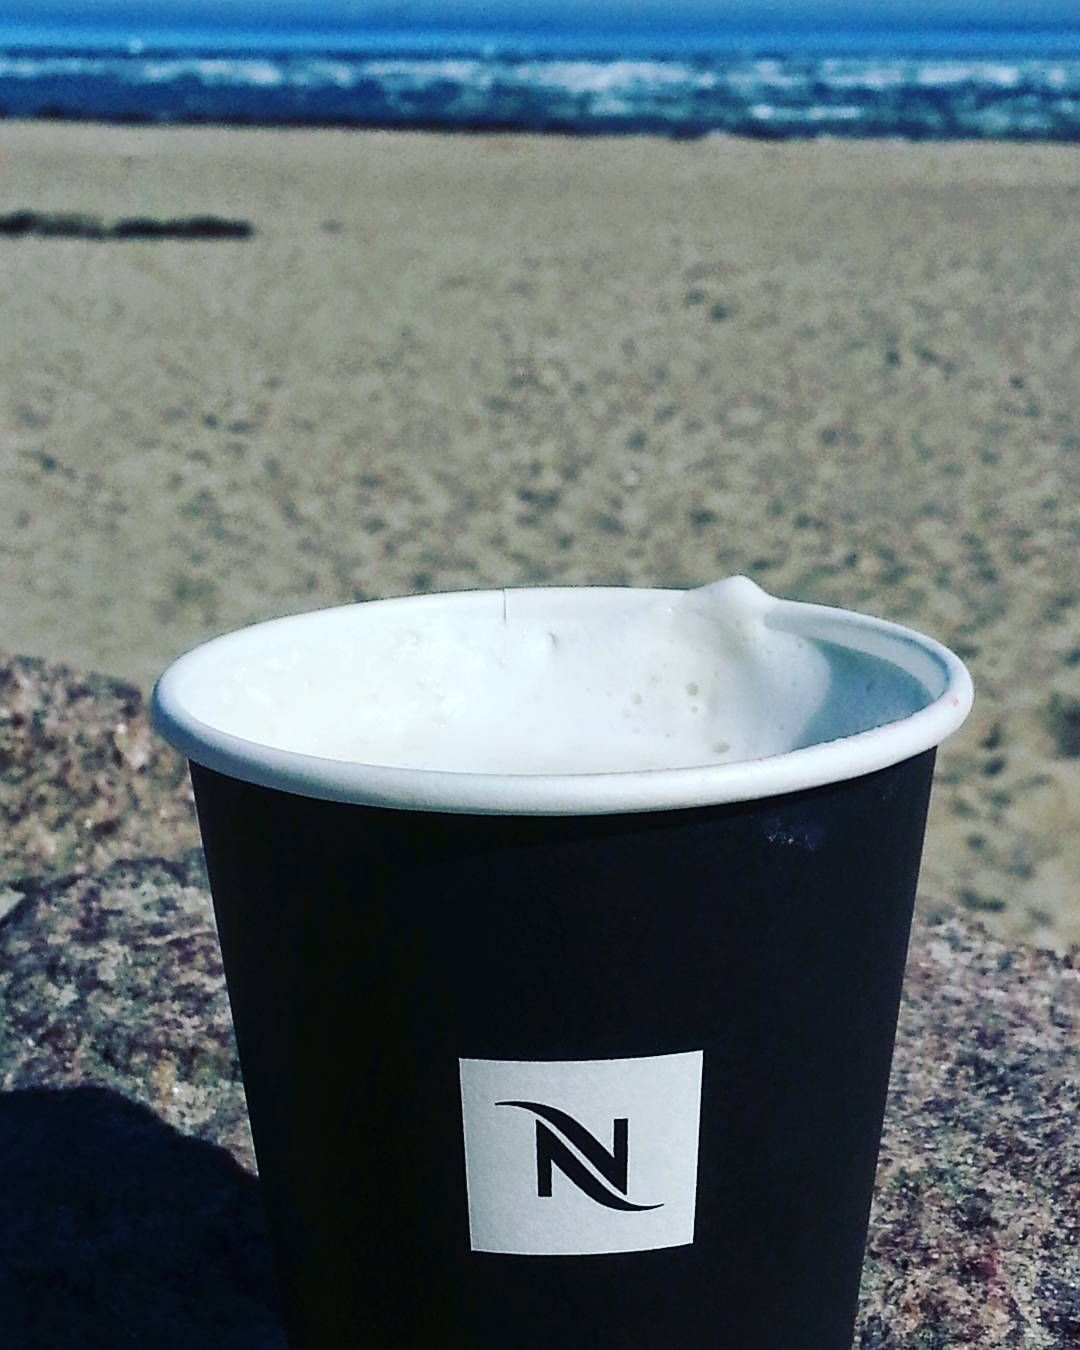 Nespresso Is Everywhere Lovely Coffee On The Beach Enjoying The